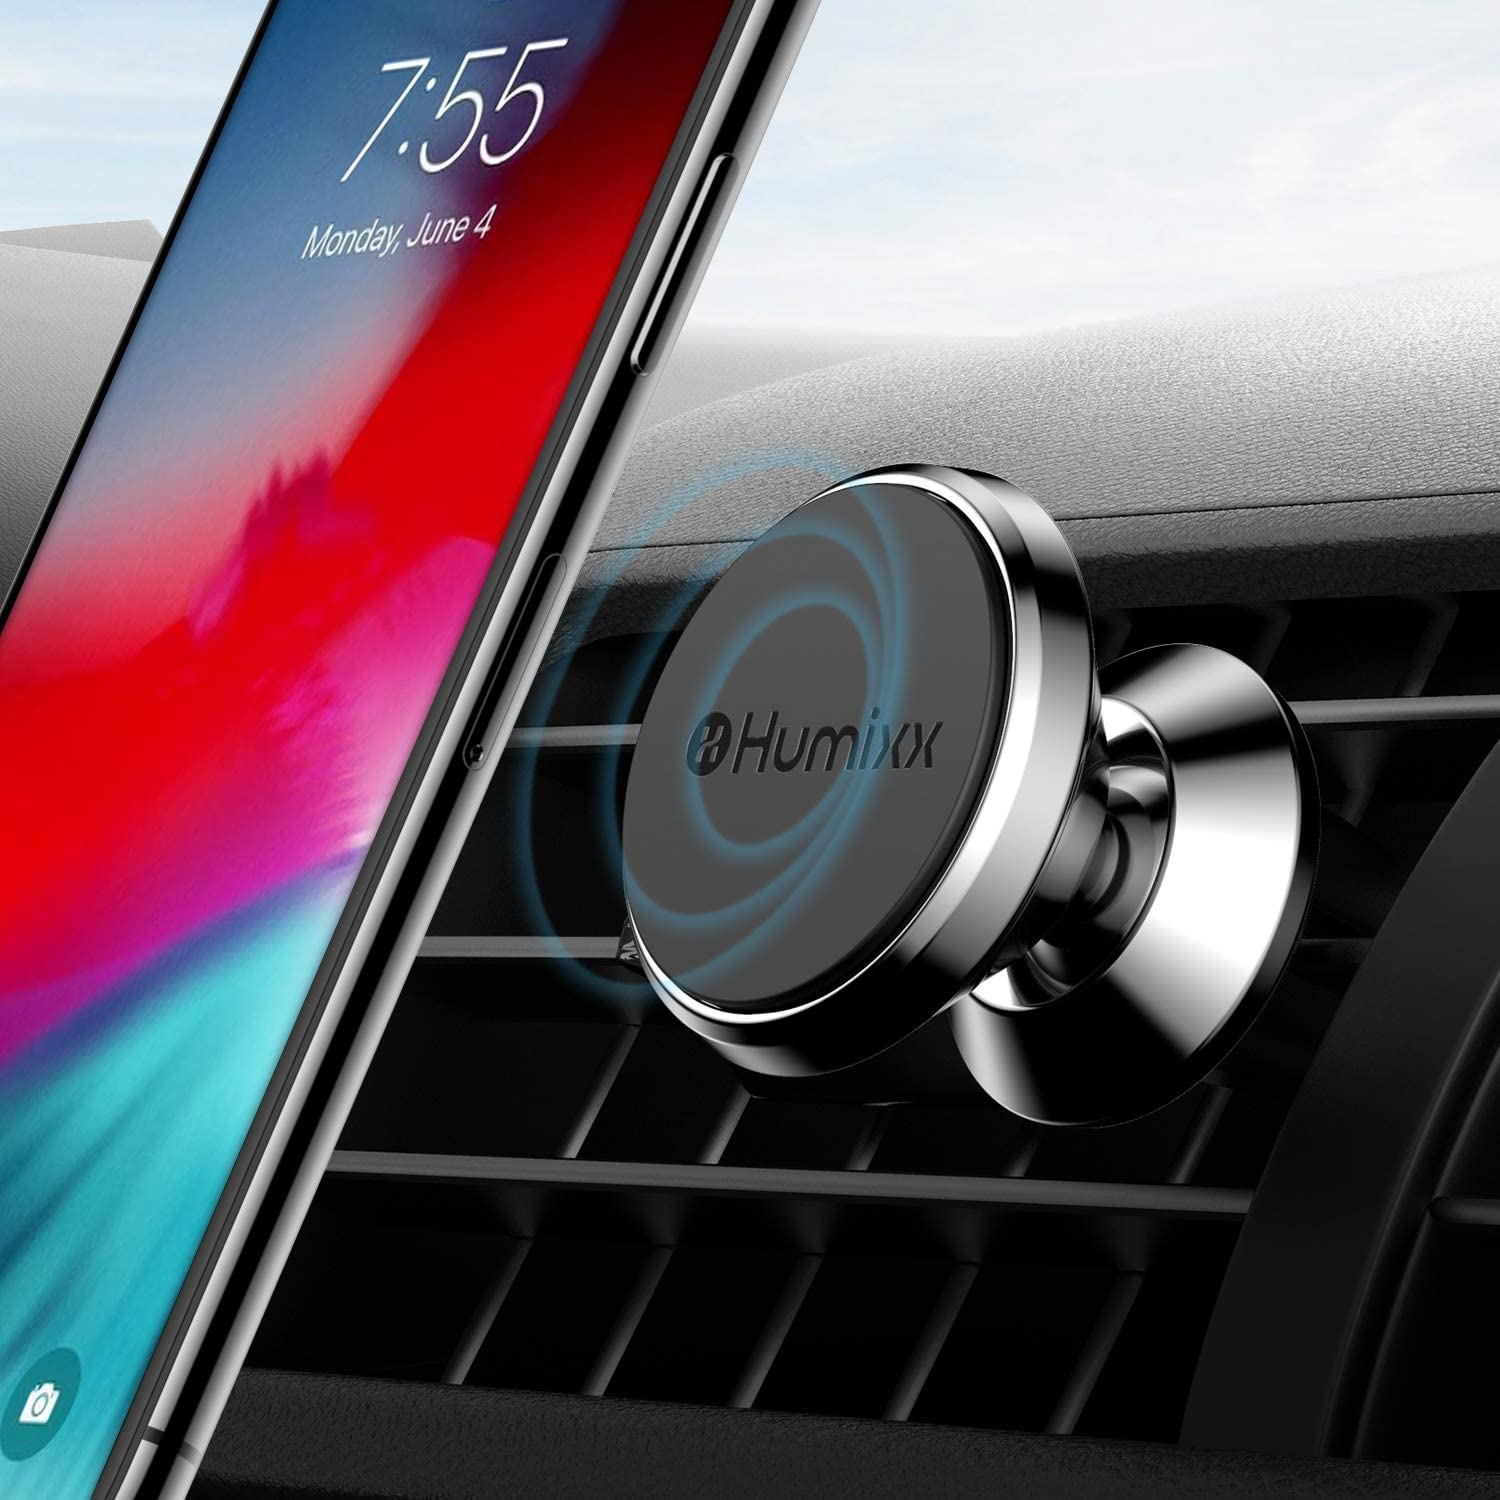 Magnetic Phone Mount for Car, Humixx Upgrated Gravity Hands-Free Super Magnetic Car Air Vent Phone Holder Compatible with iPhone SE 11 Pro Max XR Xs Max X 7 8 Plus/Samsung/Huawei/for Any Phone, Black